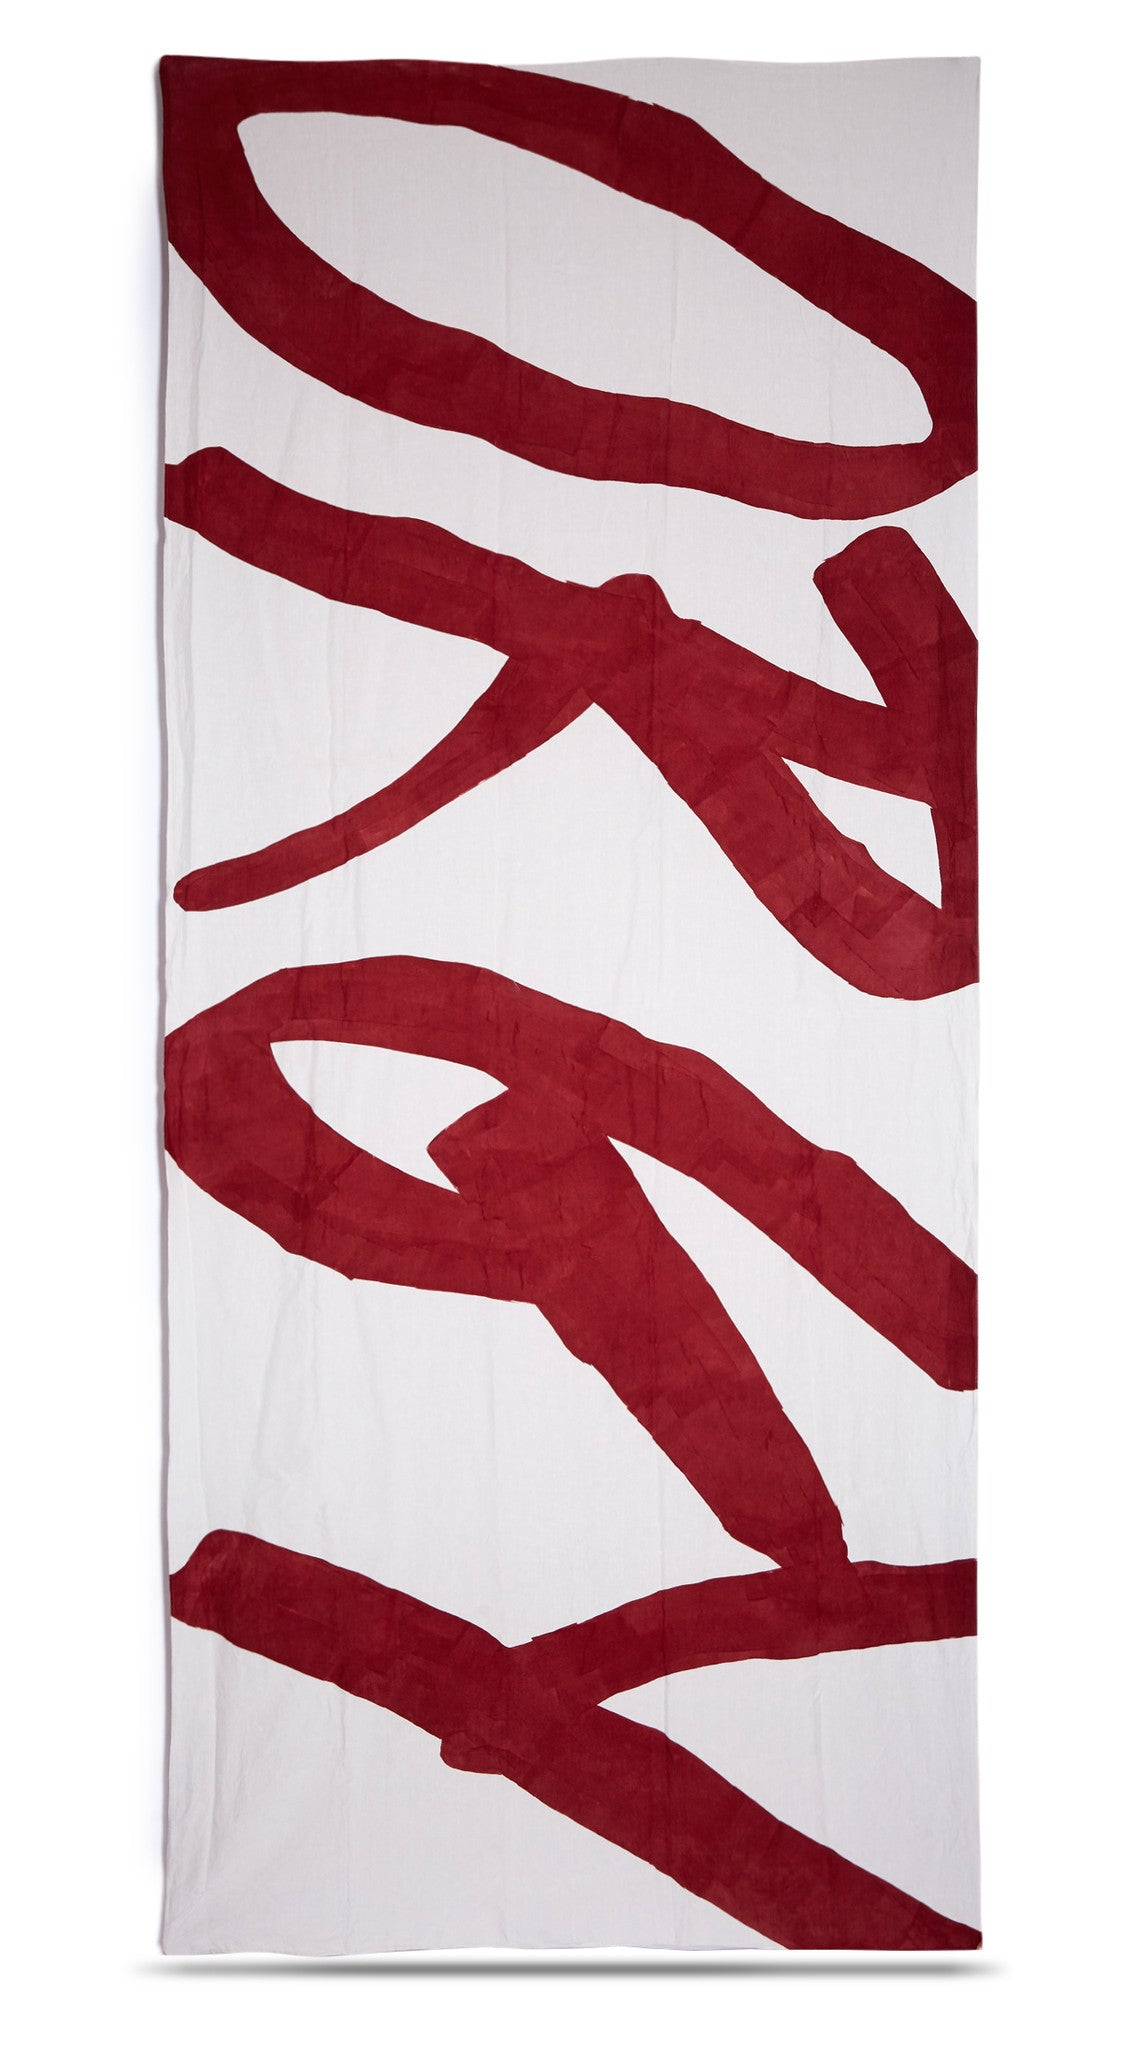 Orgy Word Linen Tablecloth in Claret Red